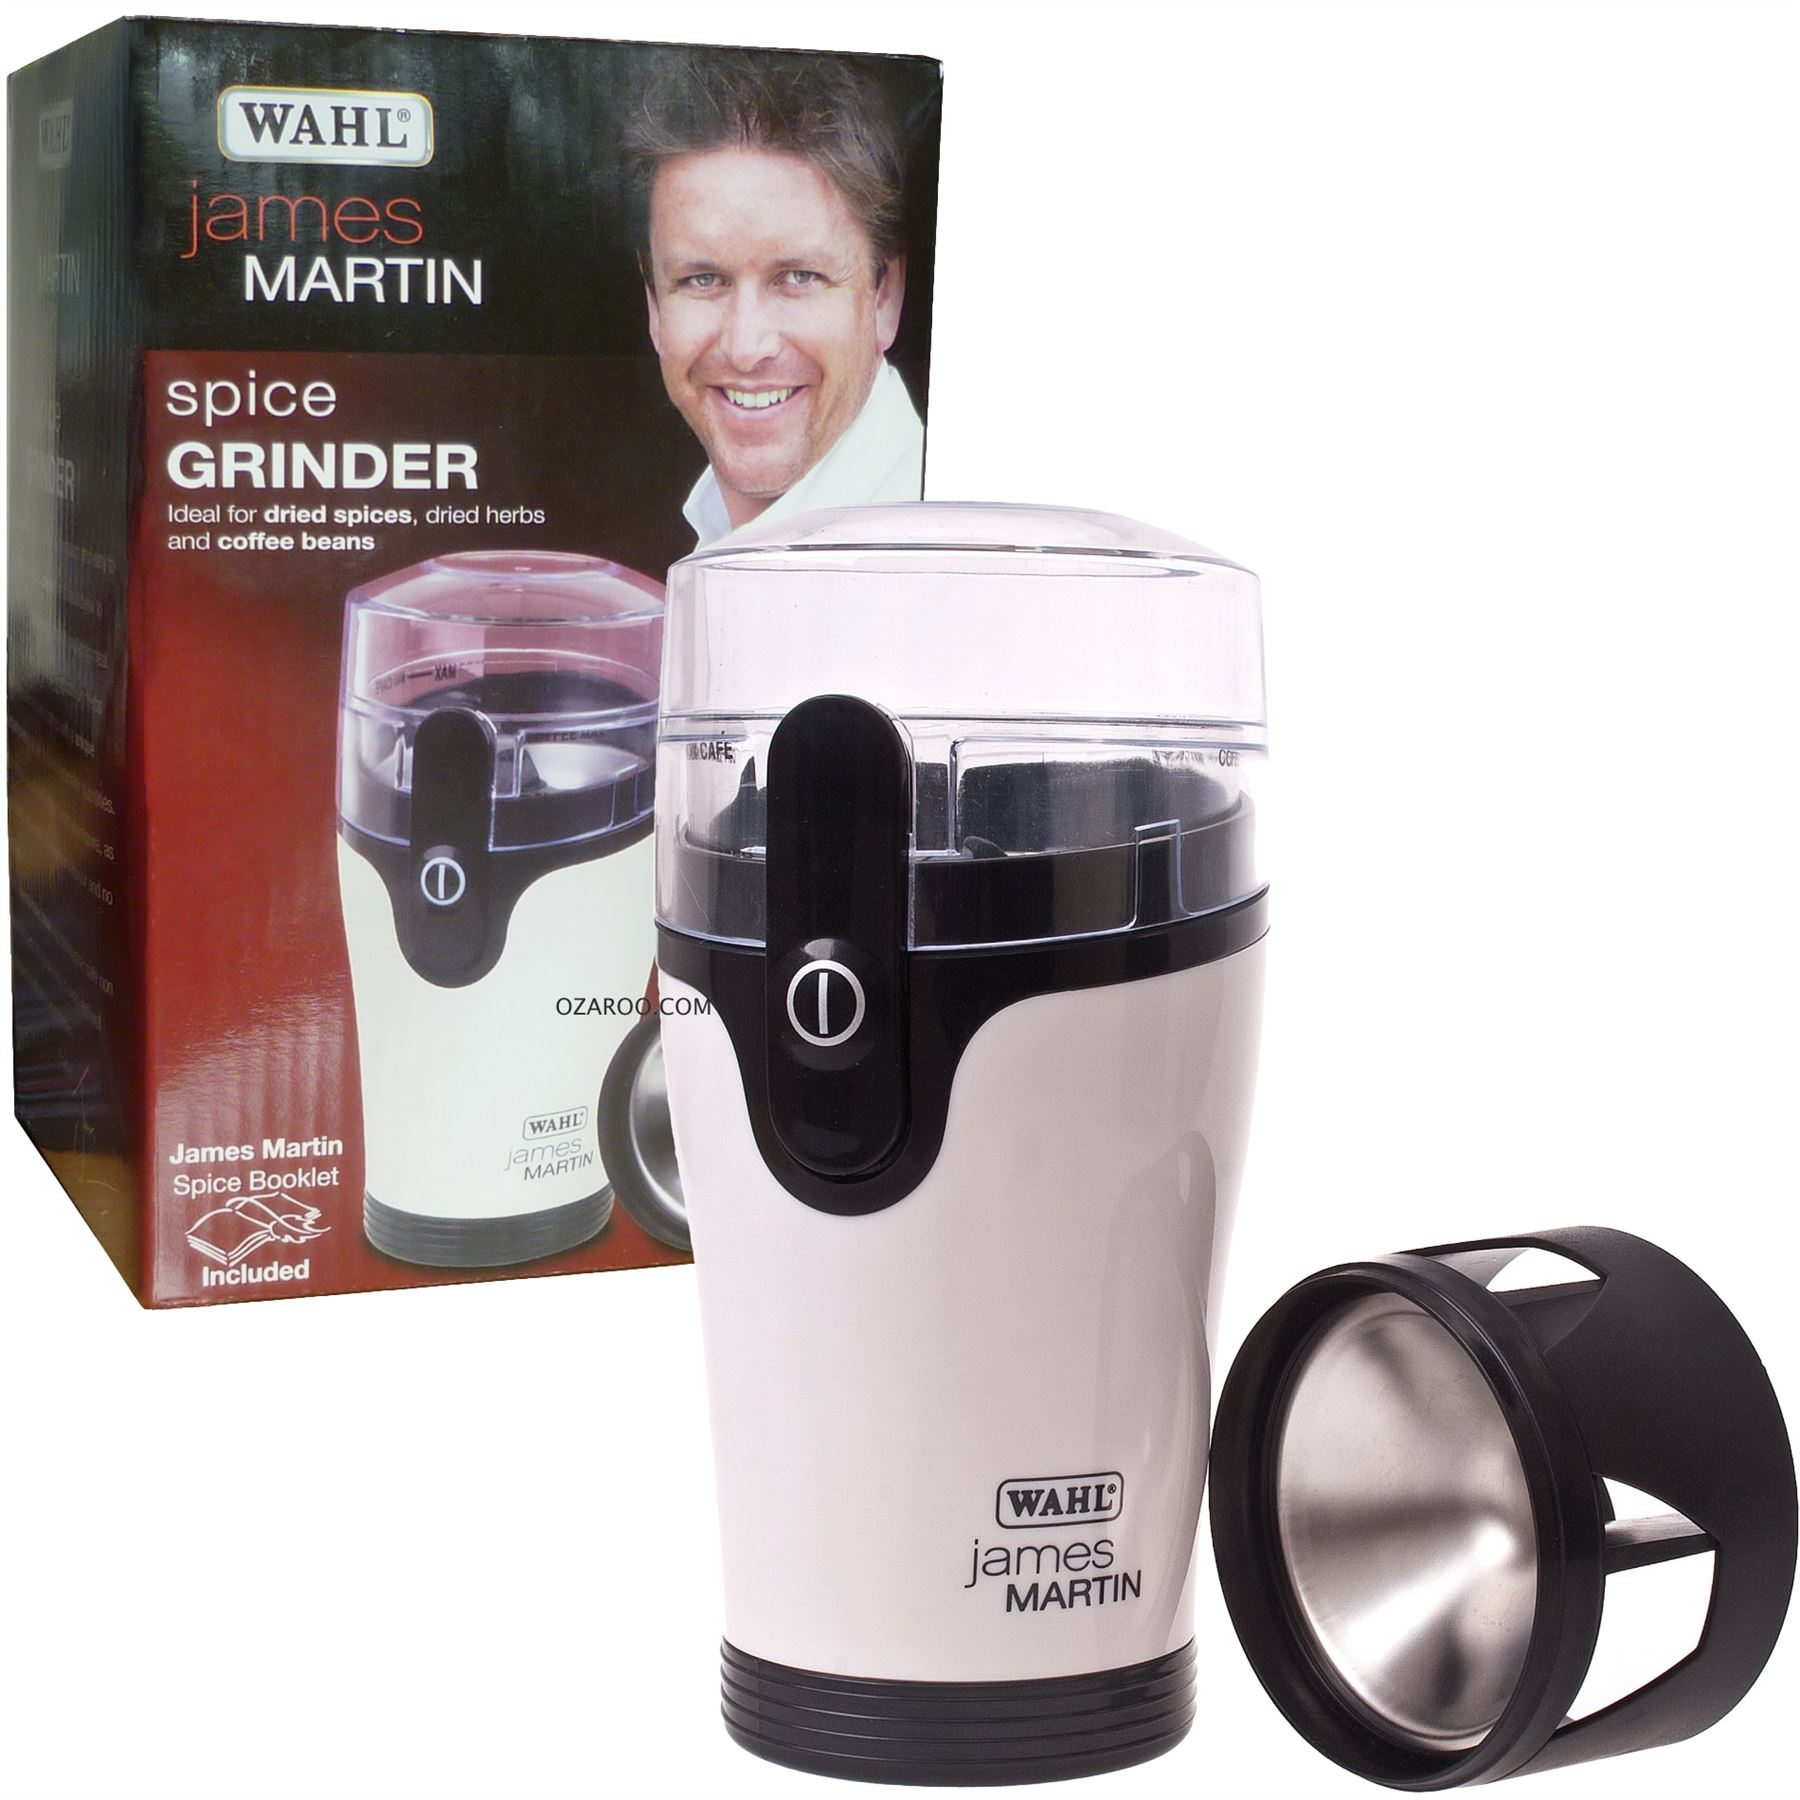 Uncategorized James Martin Kitchen Appliances james martin wahl home kitchen spice grinder white black zx789 with spices recipe booklet black